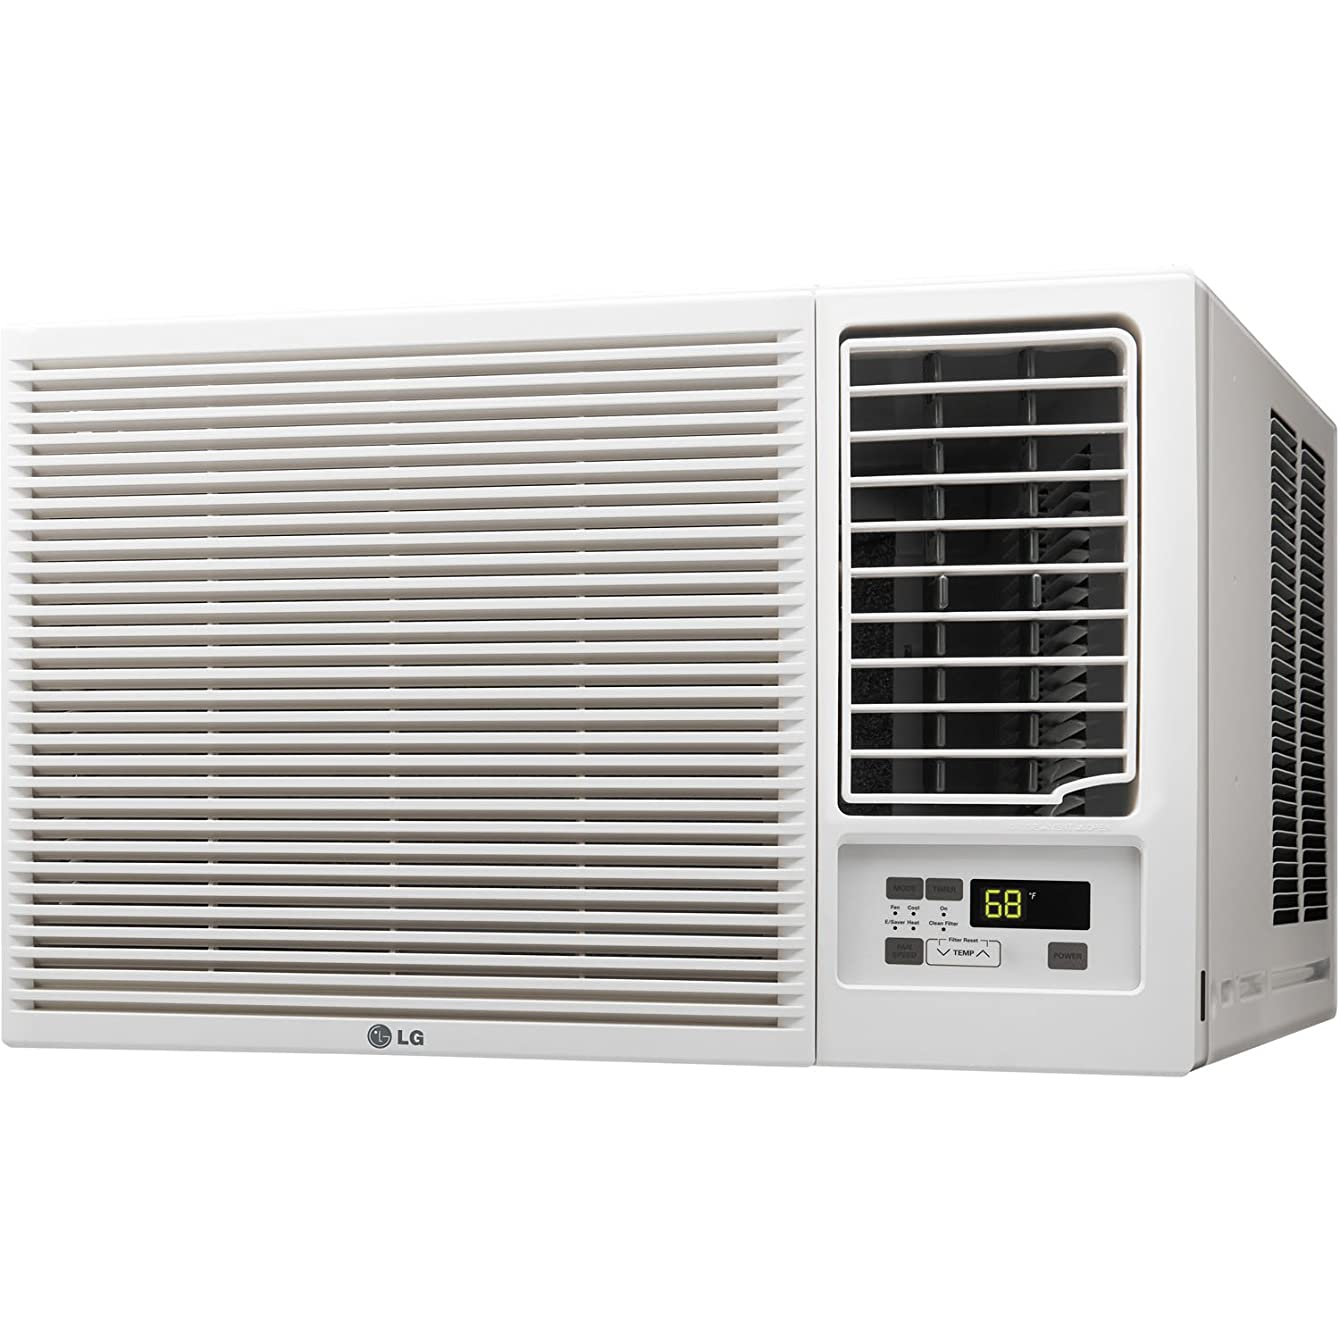 LG ENERGY EFFICIENT 12,000 BTU Air Conditioner Unit (Slide In-Out Chassis) with SPECIAL 230V Plug, Multiple Cooling/Heating Speeds and 24 Hour Timer, FREE Remote Control Included